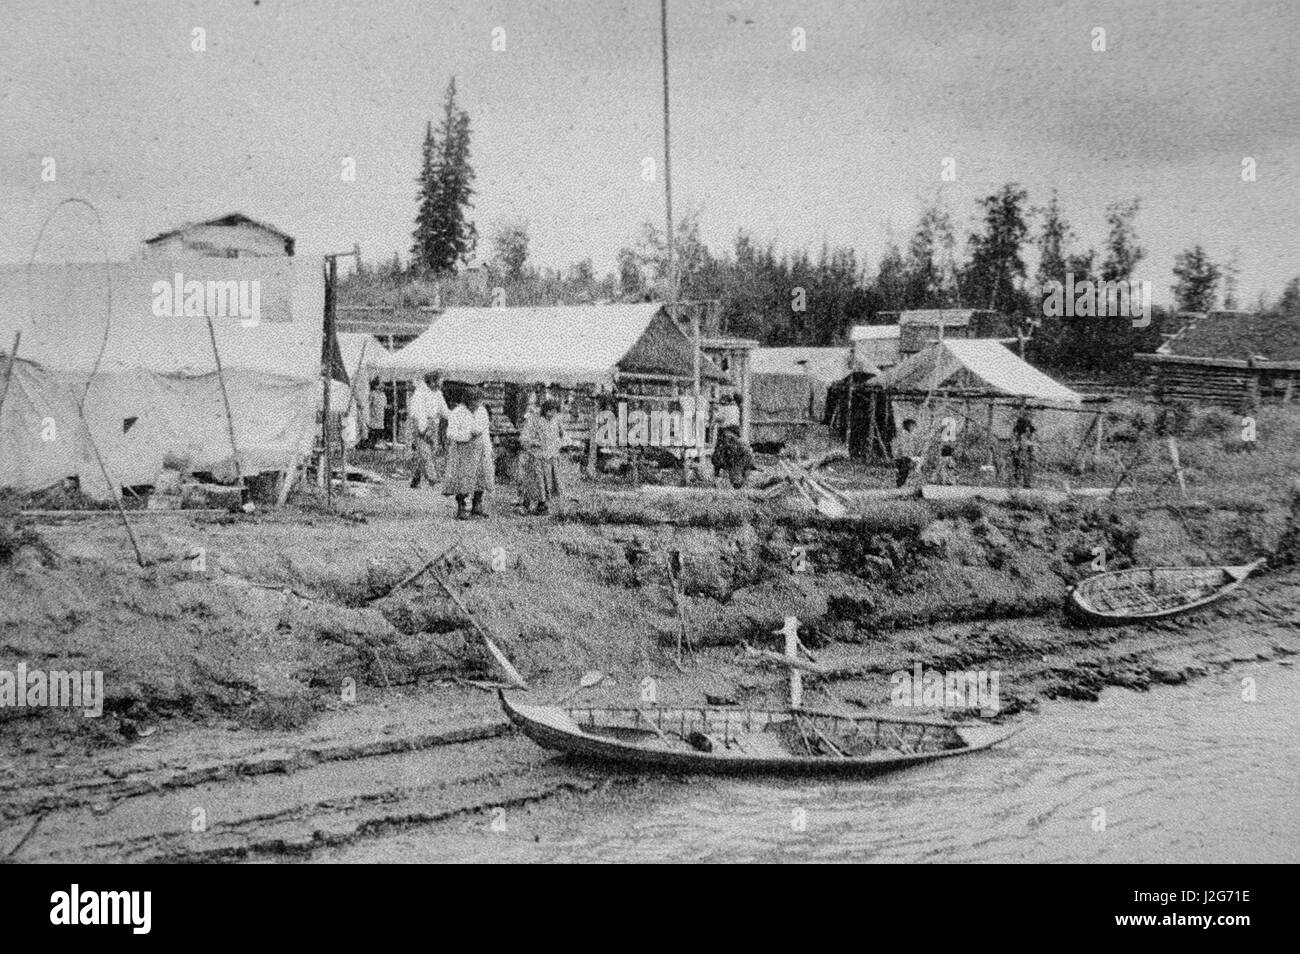 Historic black and white photograph of Athabaskan fishing village with birchbark canoes on river banks. Alaska - Stock Image